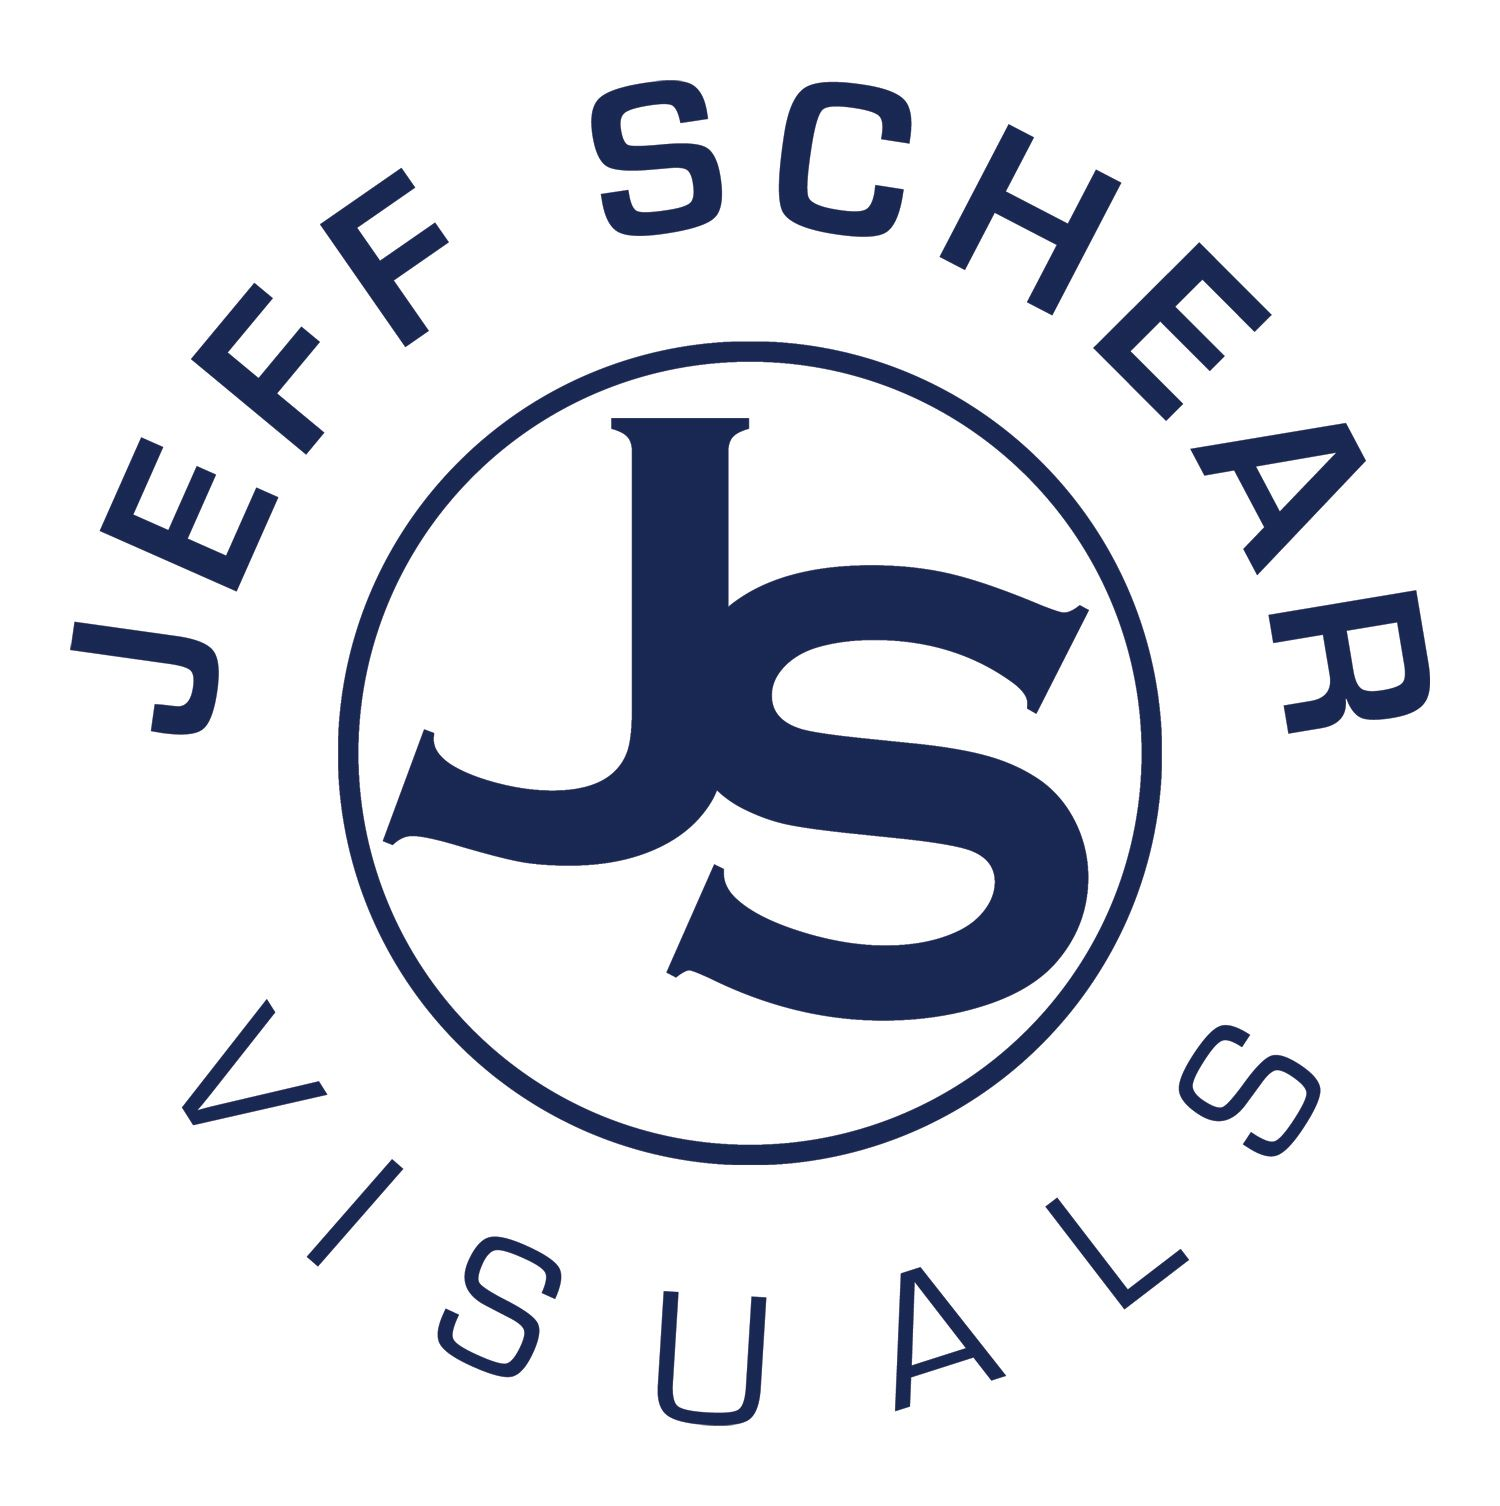 Jeff Schear Visuals